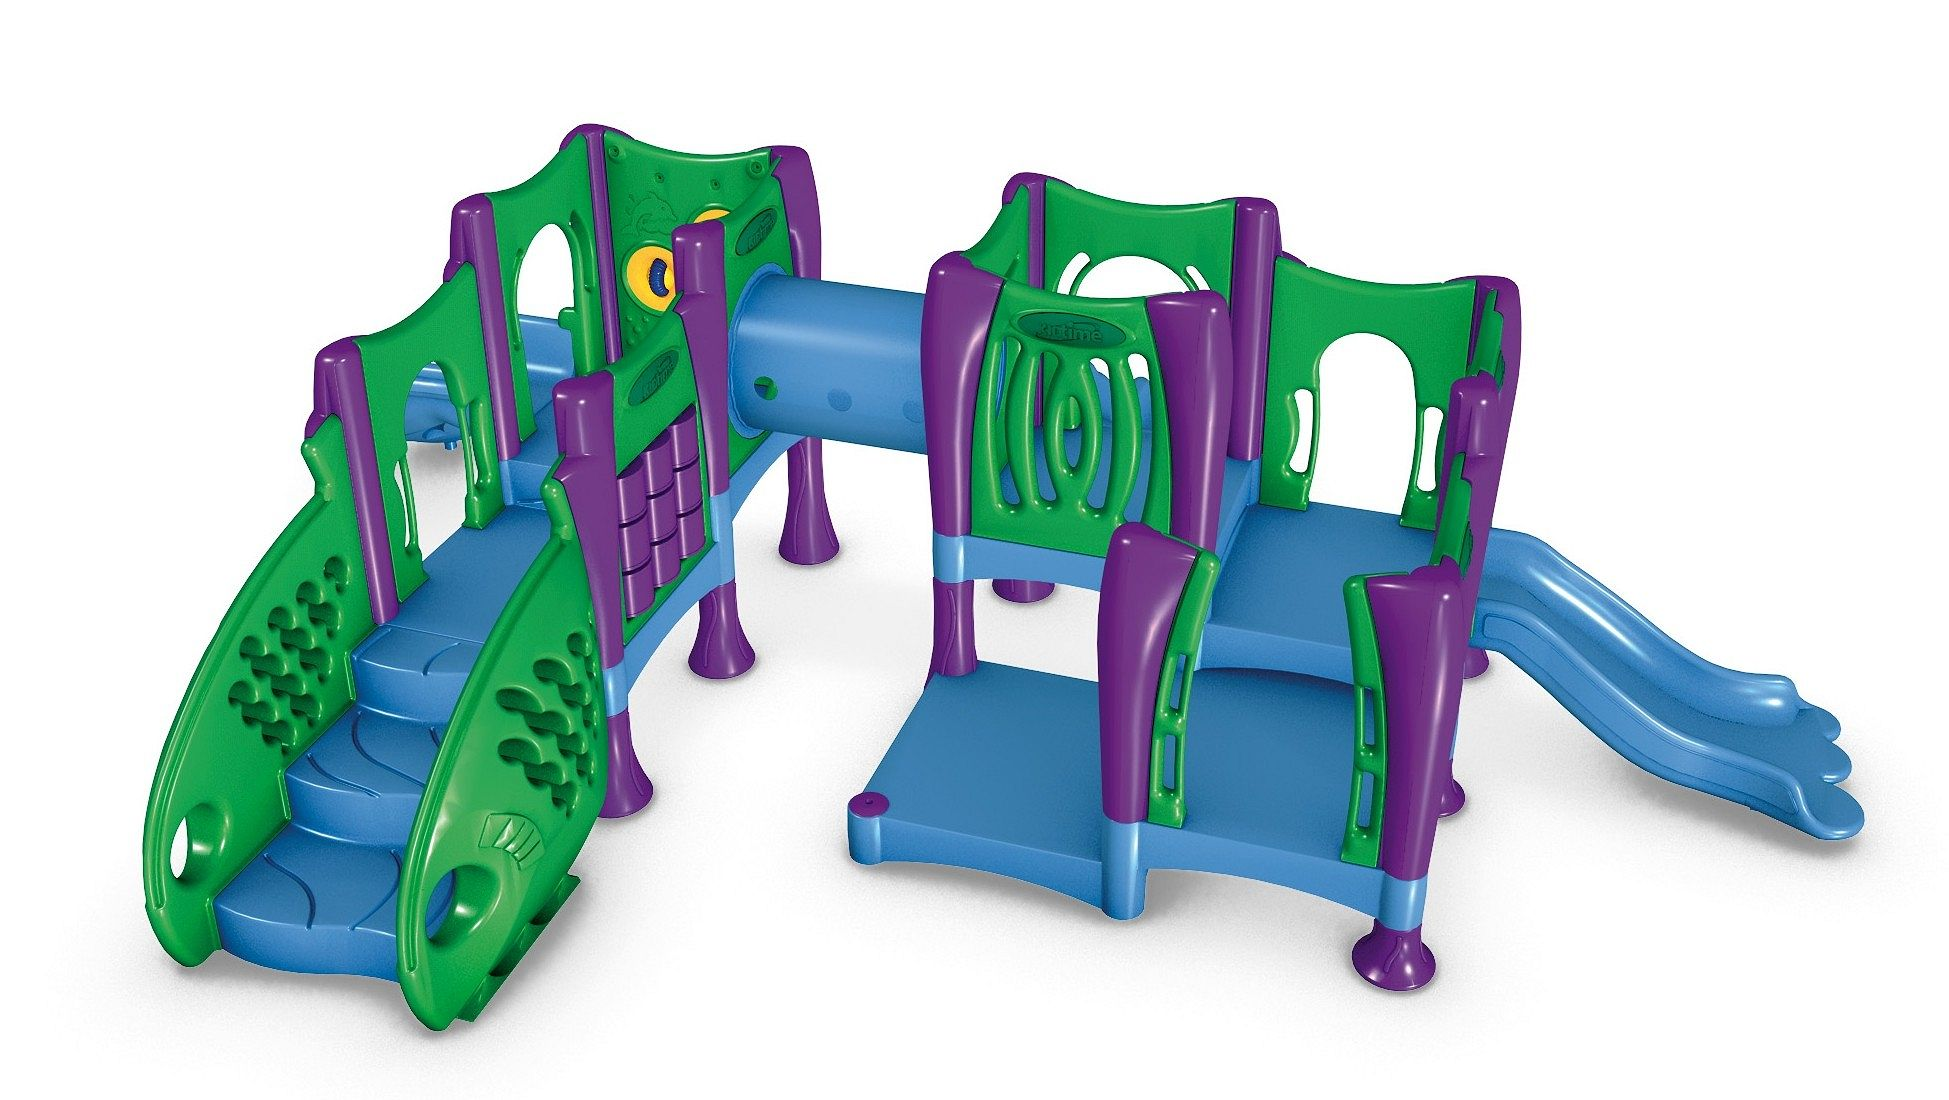 Toddler 7 Preschool Playground Equipment